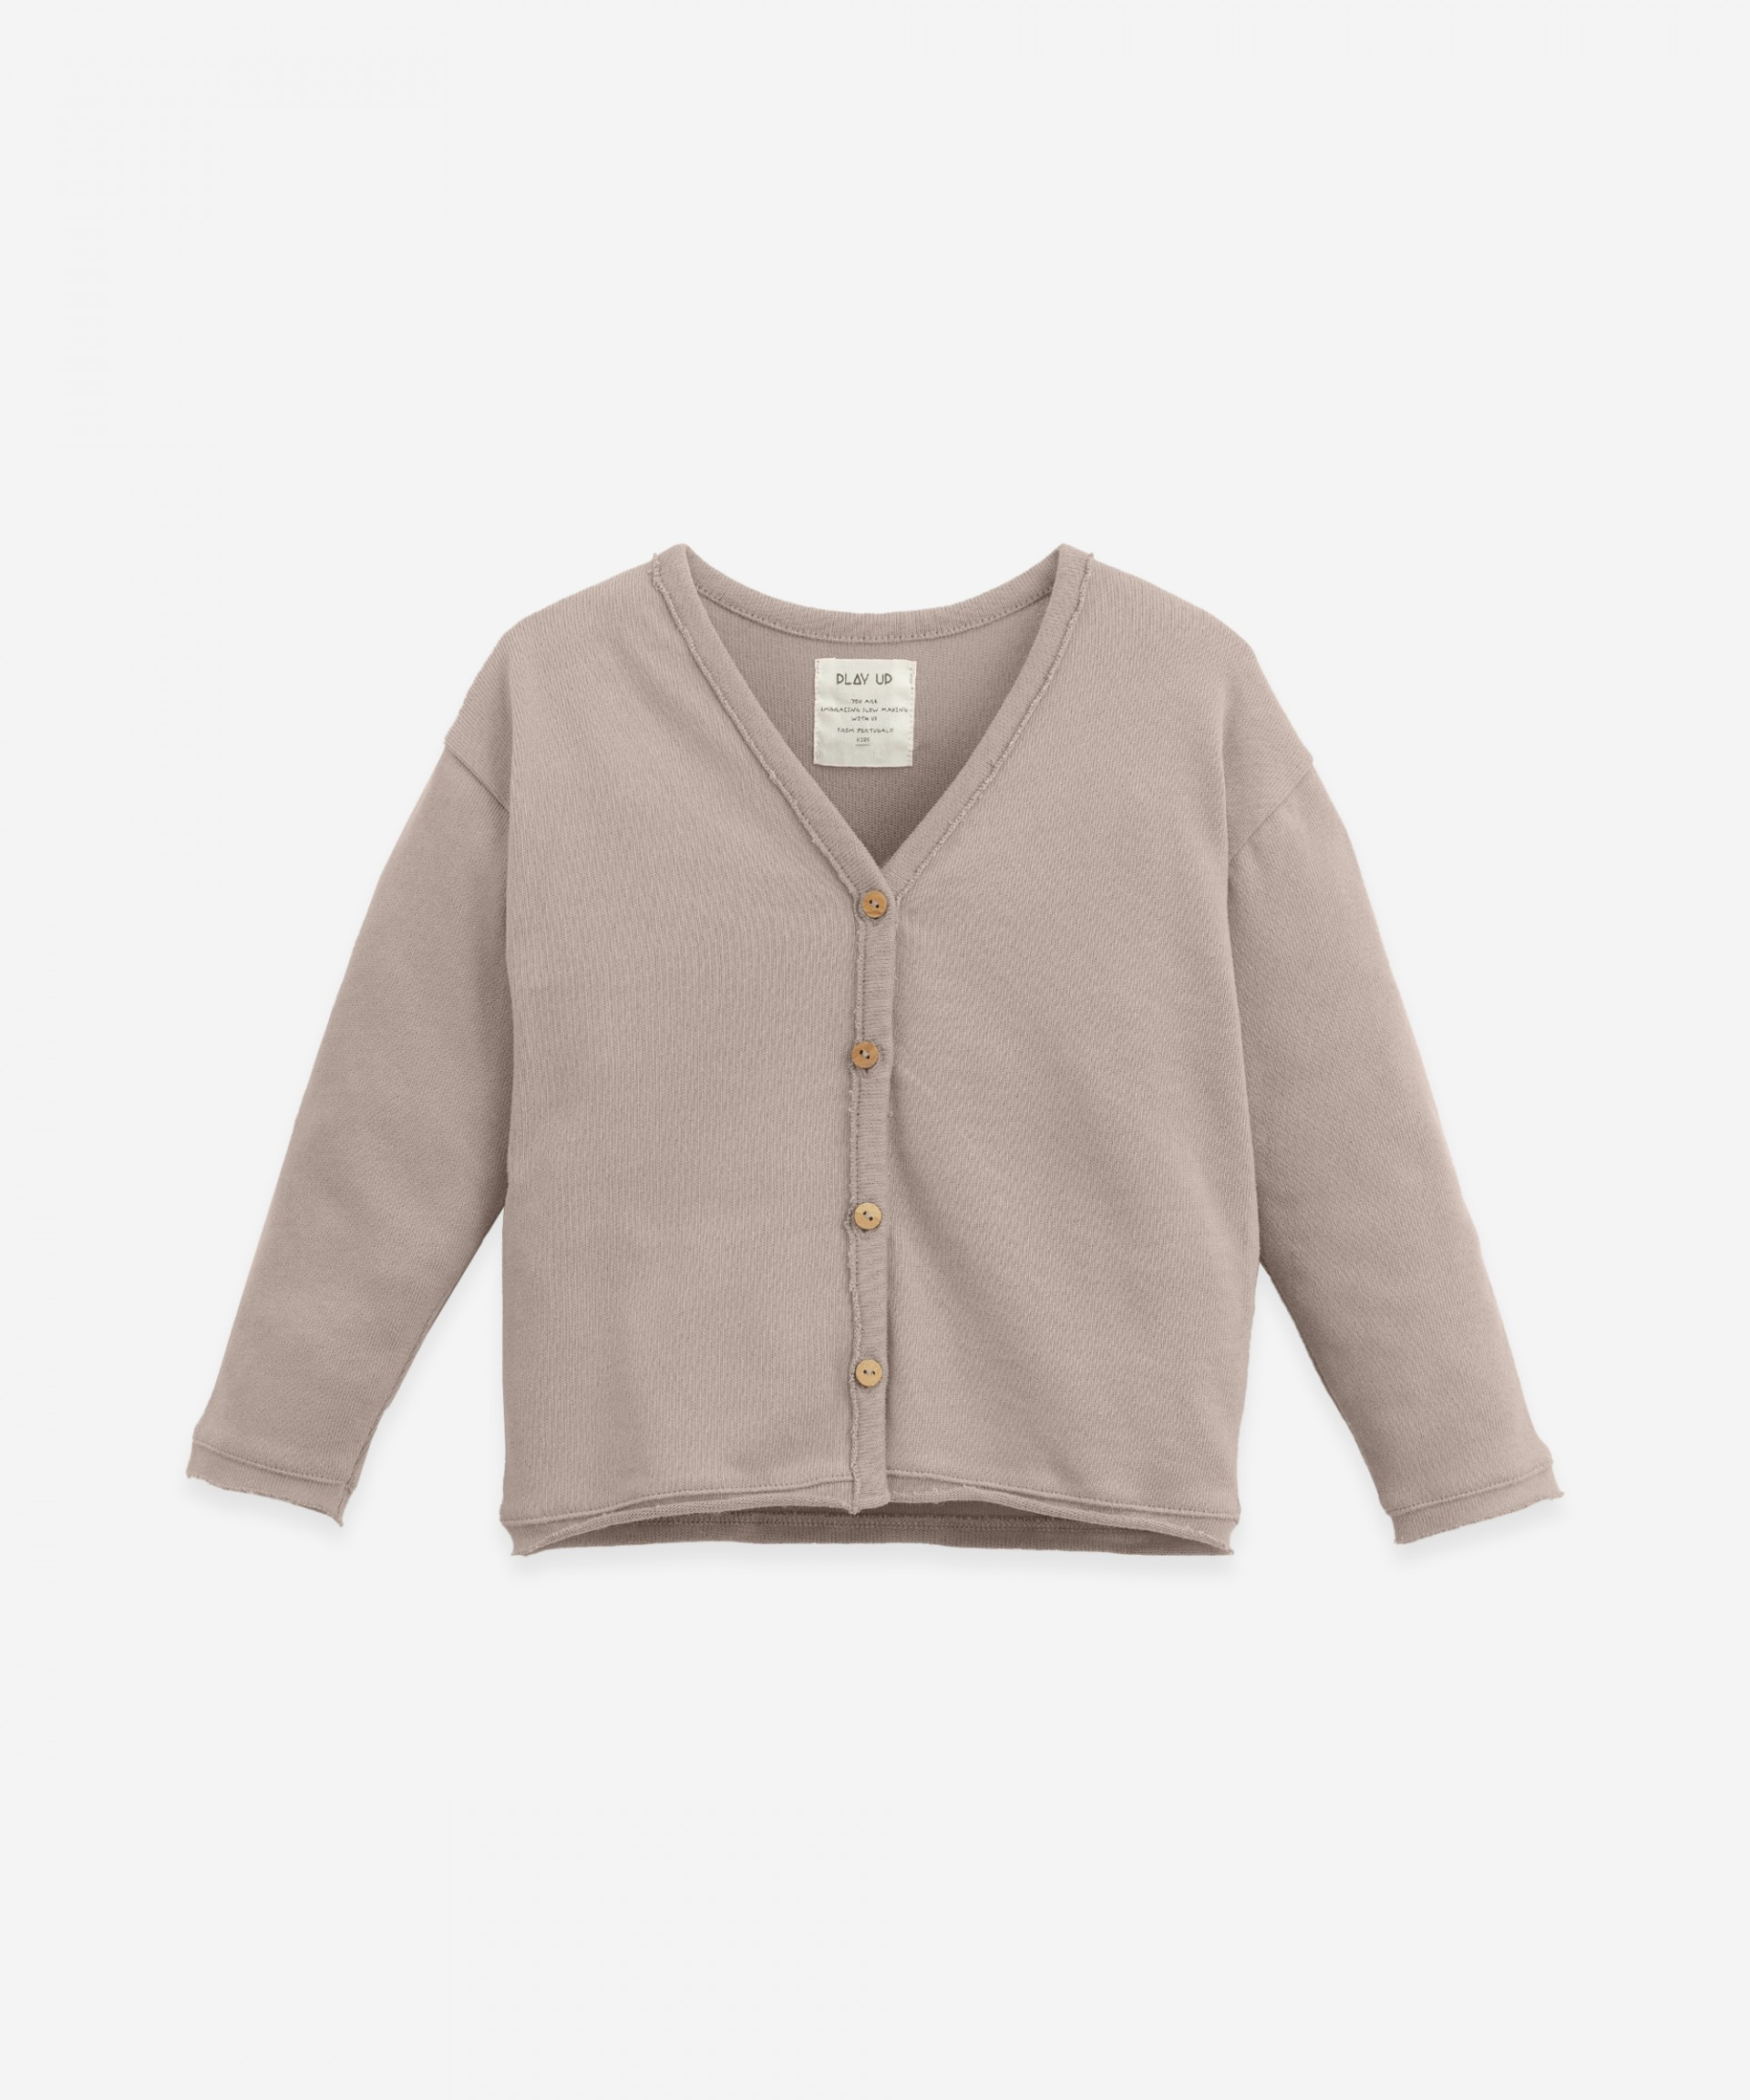 Cardigan with wooden buttons | Botany